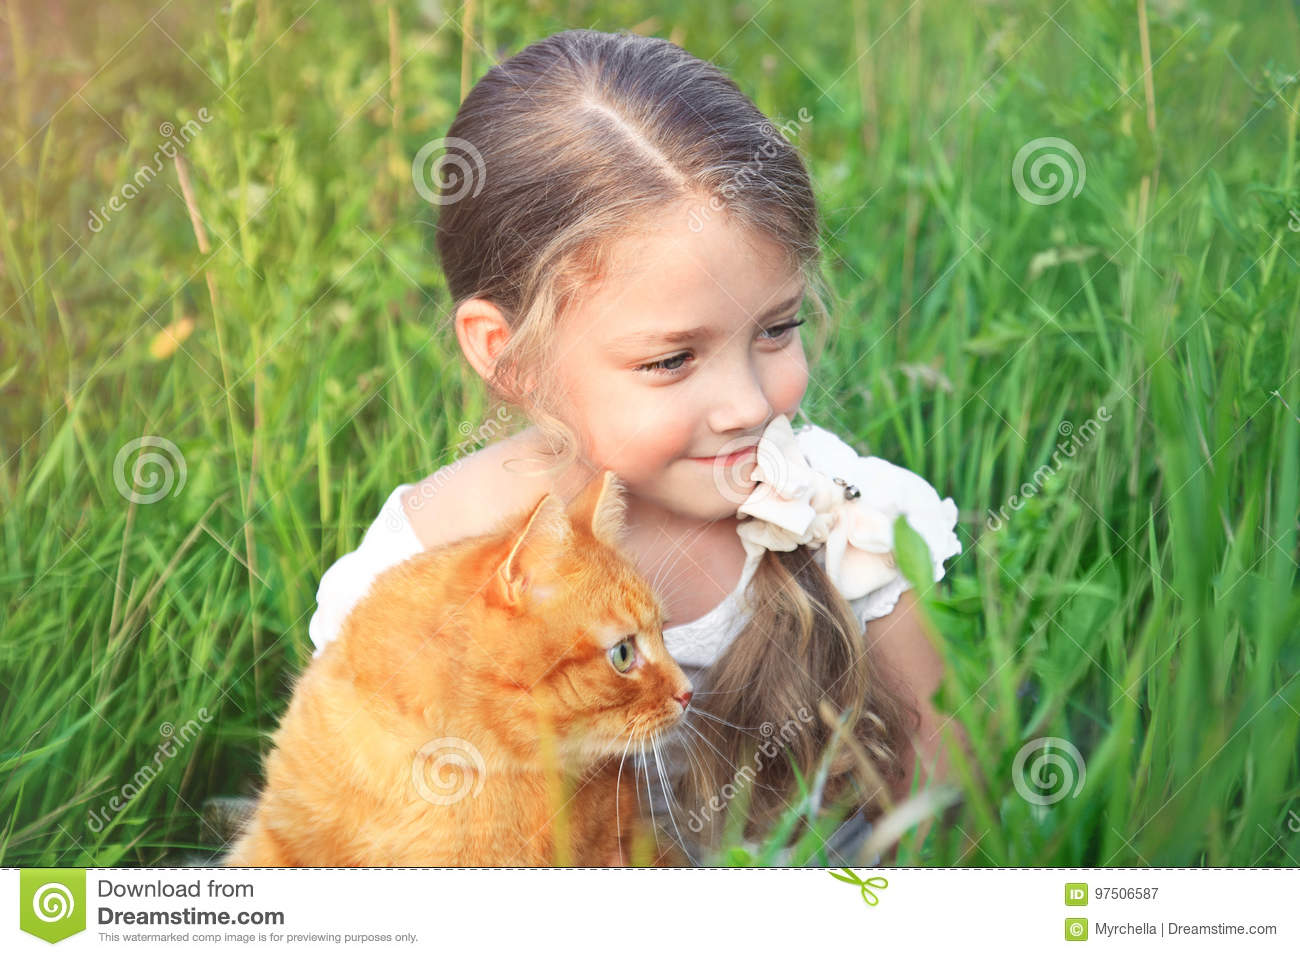 Cute little girl is holding a red cat sitting in the grass.